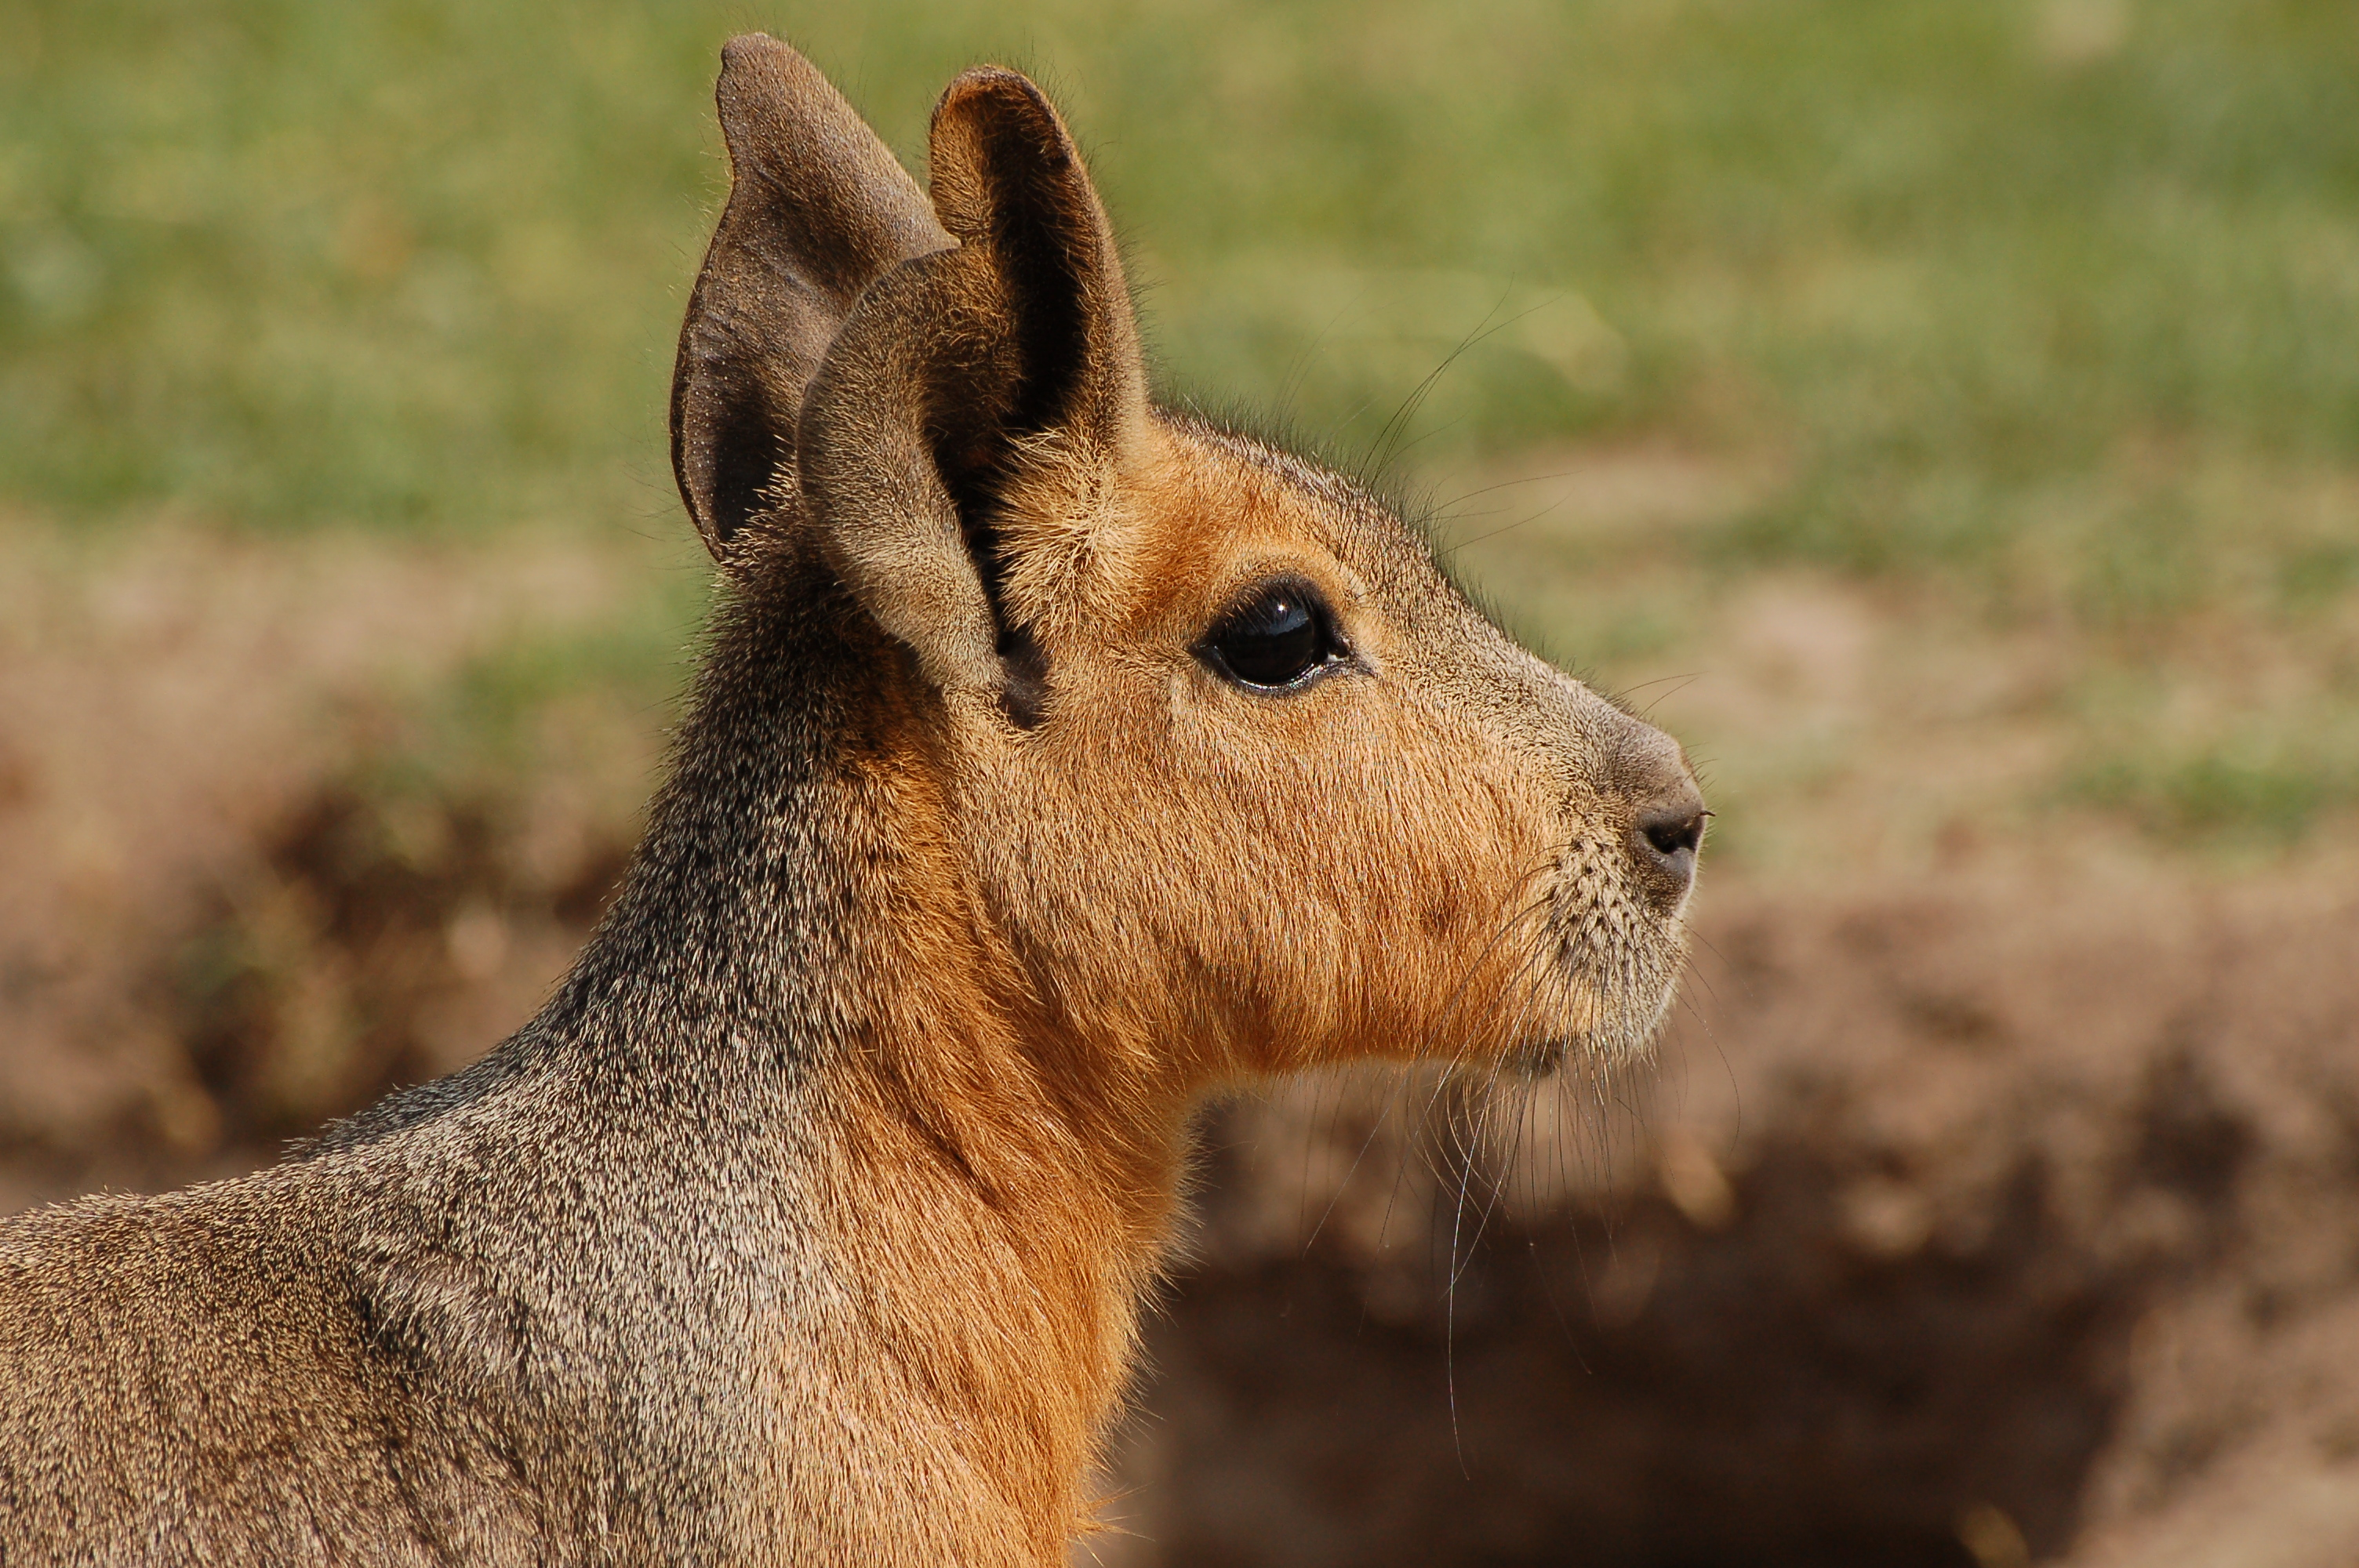 ZooPic - Patagonian Mara picture